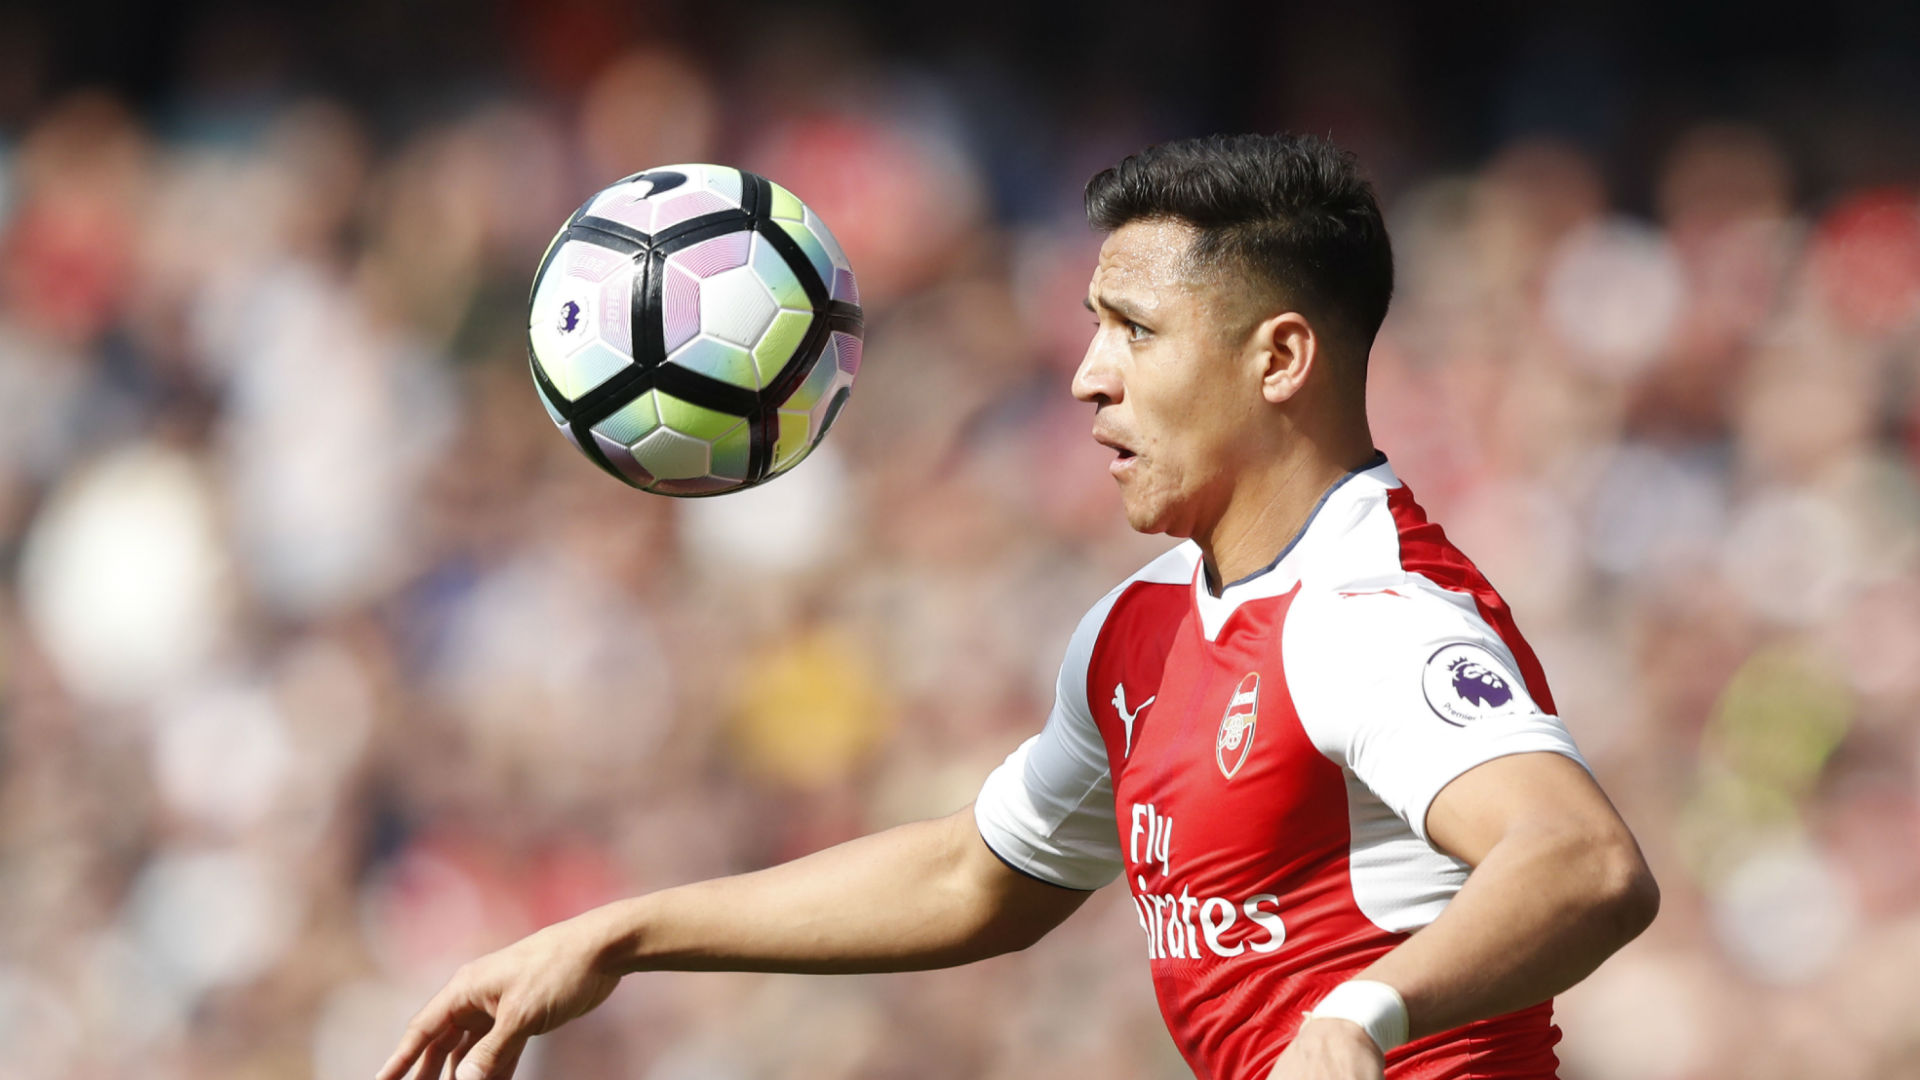 Bolt tells Mourinho to buy Arsenal star Sanchez